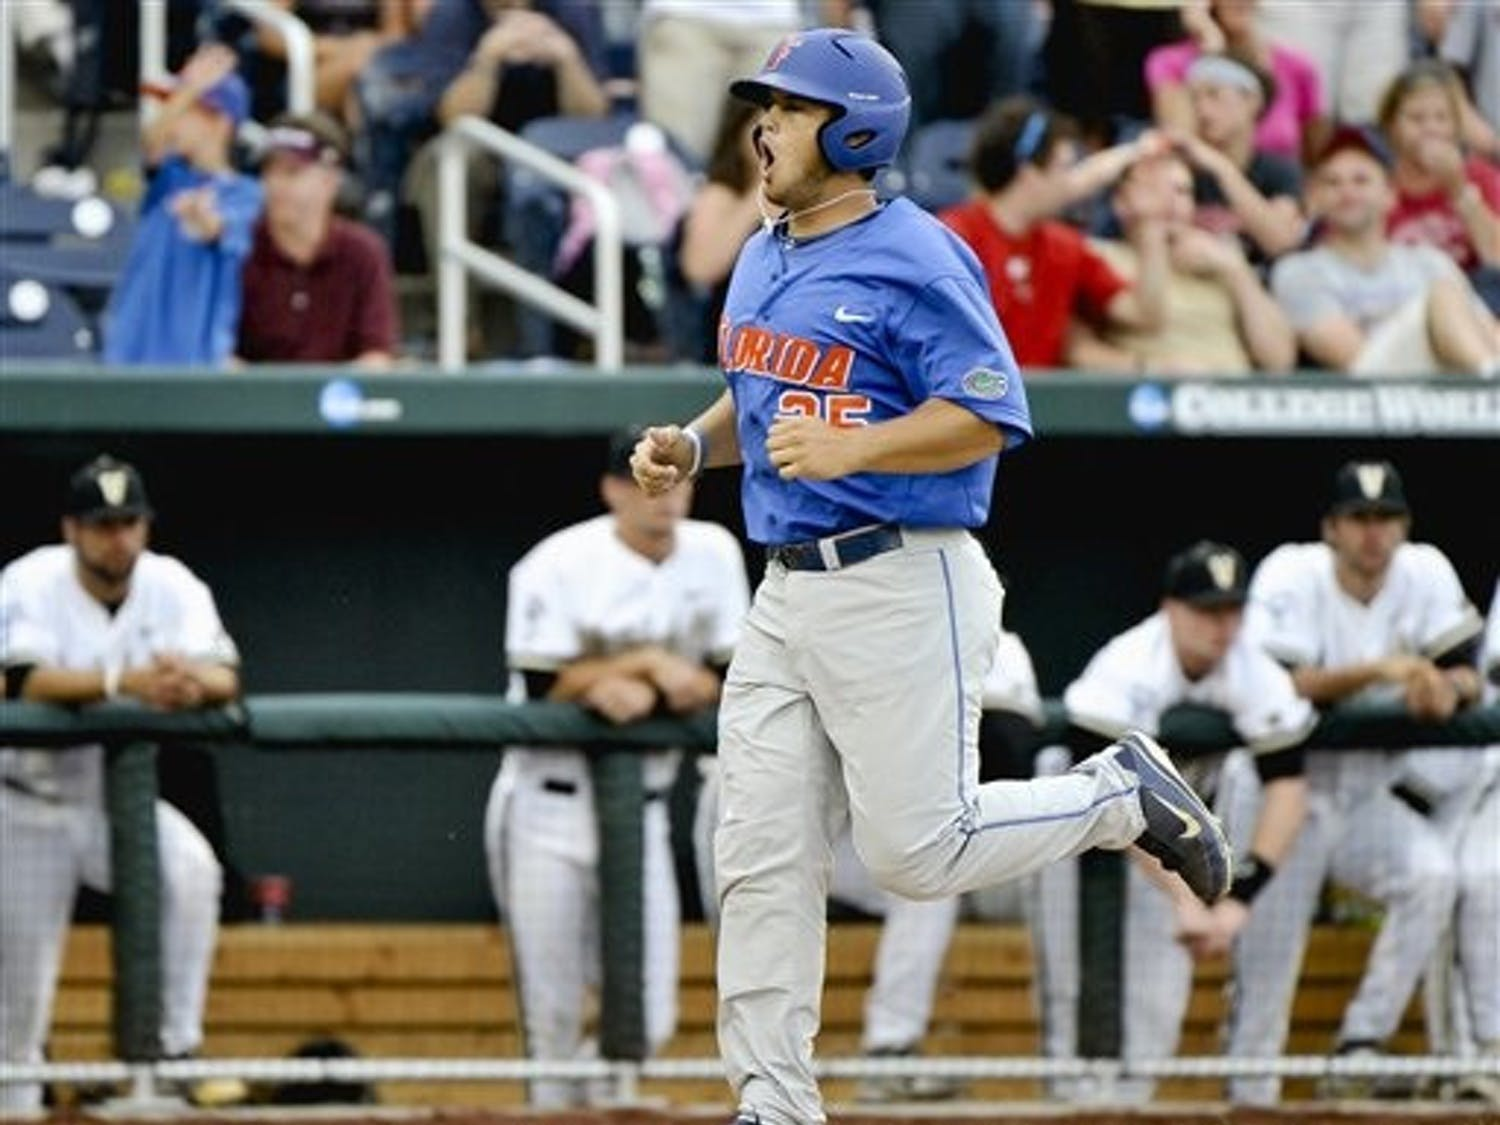 Preston Tucker and the Gators have dropped Vanderbilt four times already this seaso, including a 3-1 victory just four days ago at the College World Series. The two teams square off Friday at 2 p.m. in a semifinals matchup.